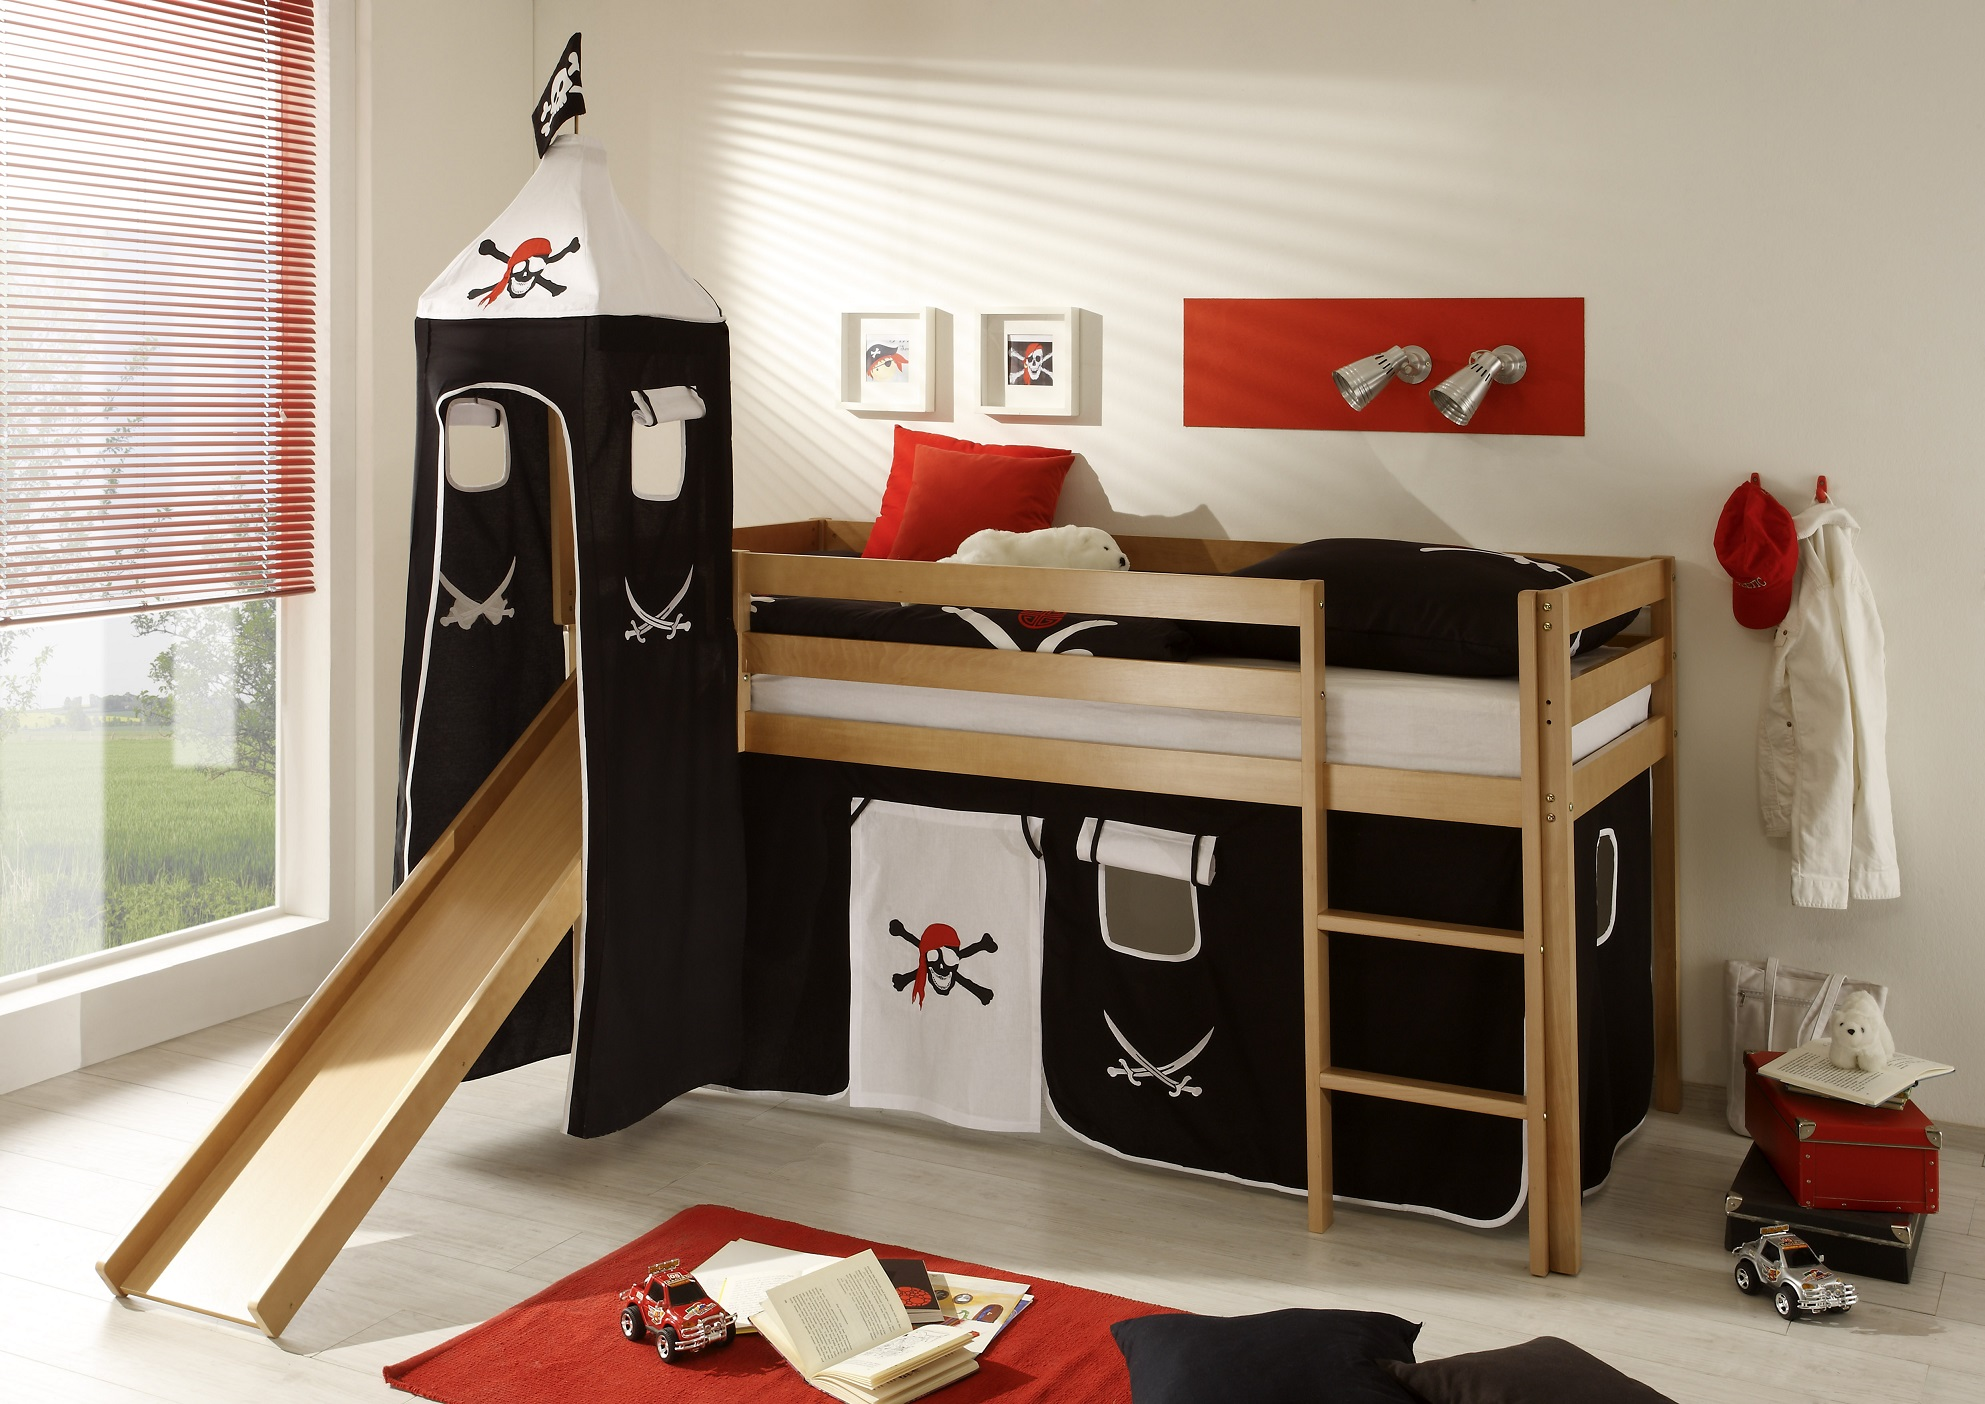 pirat hochbett mit turm rutsche weiss buche massvi 90x200cm traum. Black Bedroom Furniture Sets. Home Design Ideas